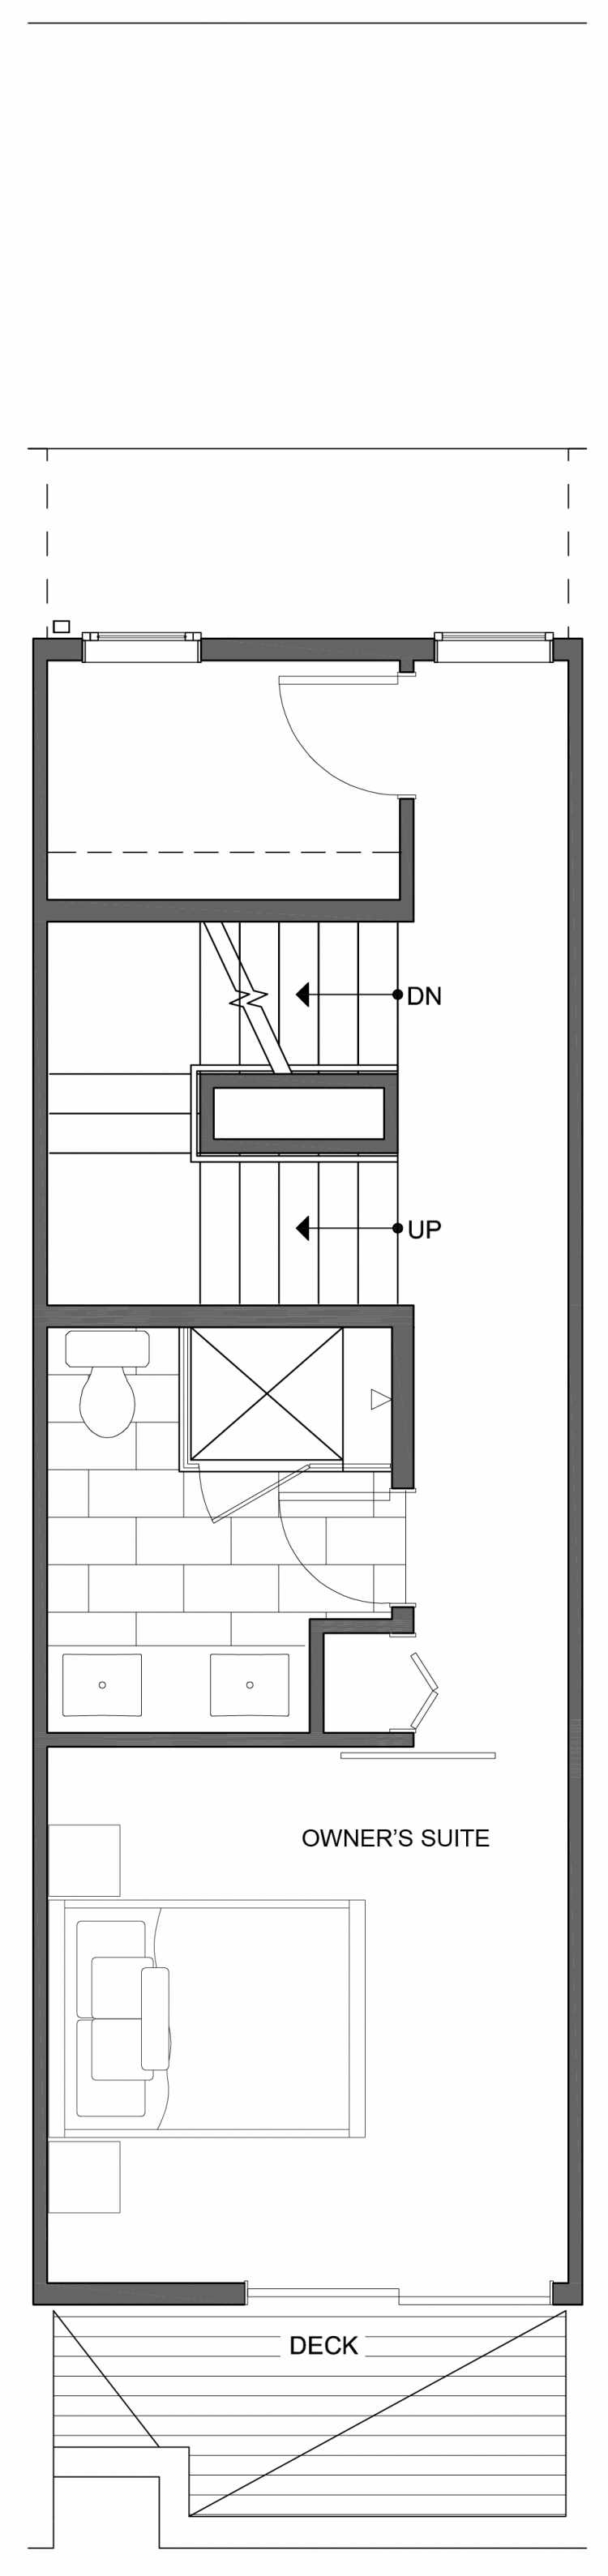 Fourth Floor Plan of 806D N 46th St, One of the Nino 15 East Townhomes by Isola Homes